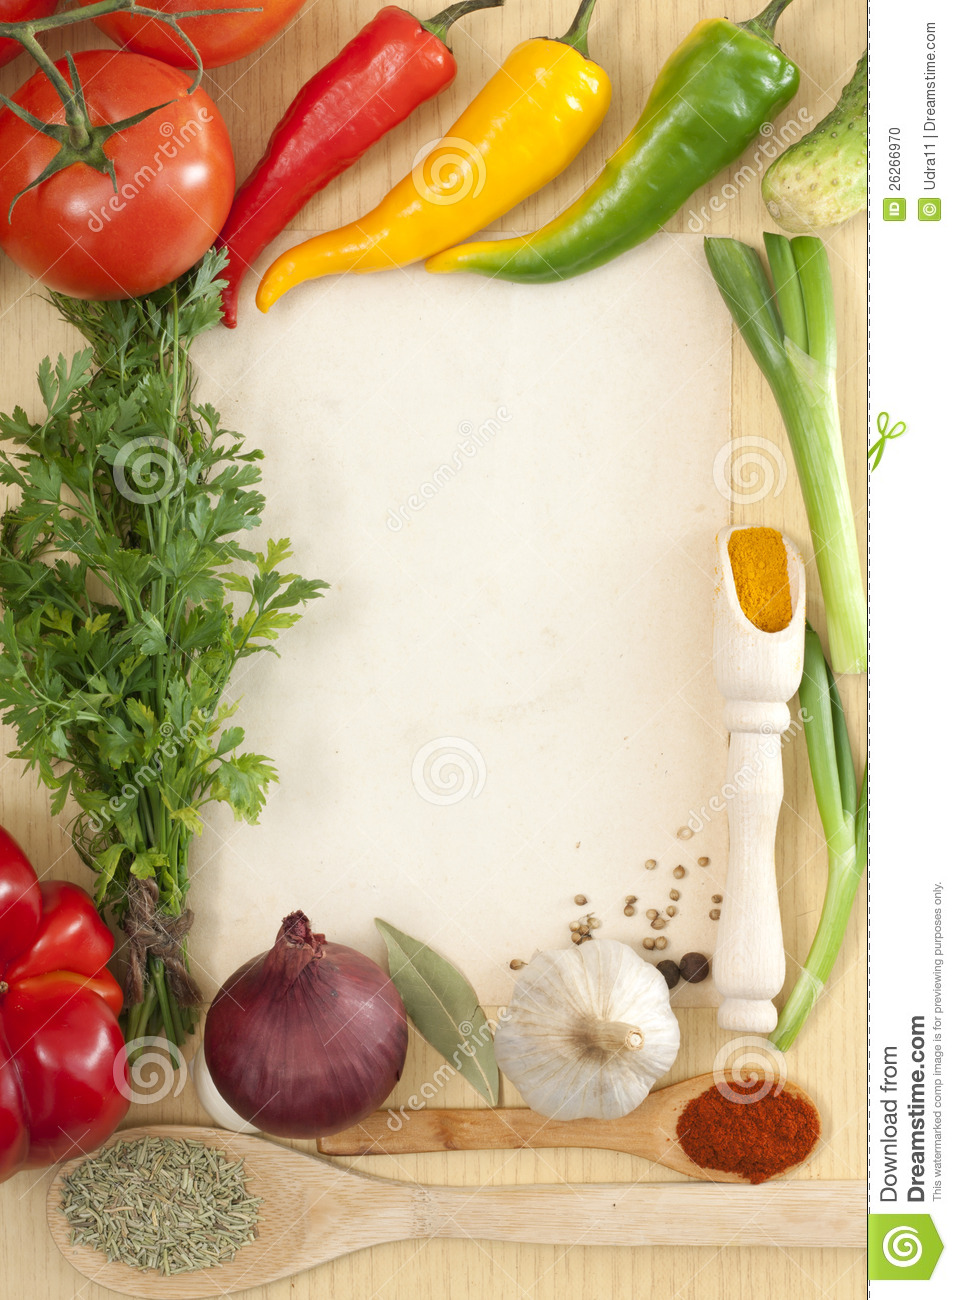 Vegetables And Spices Border Stock Photo - Image: 26266970